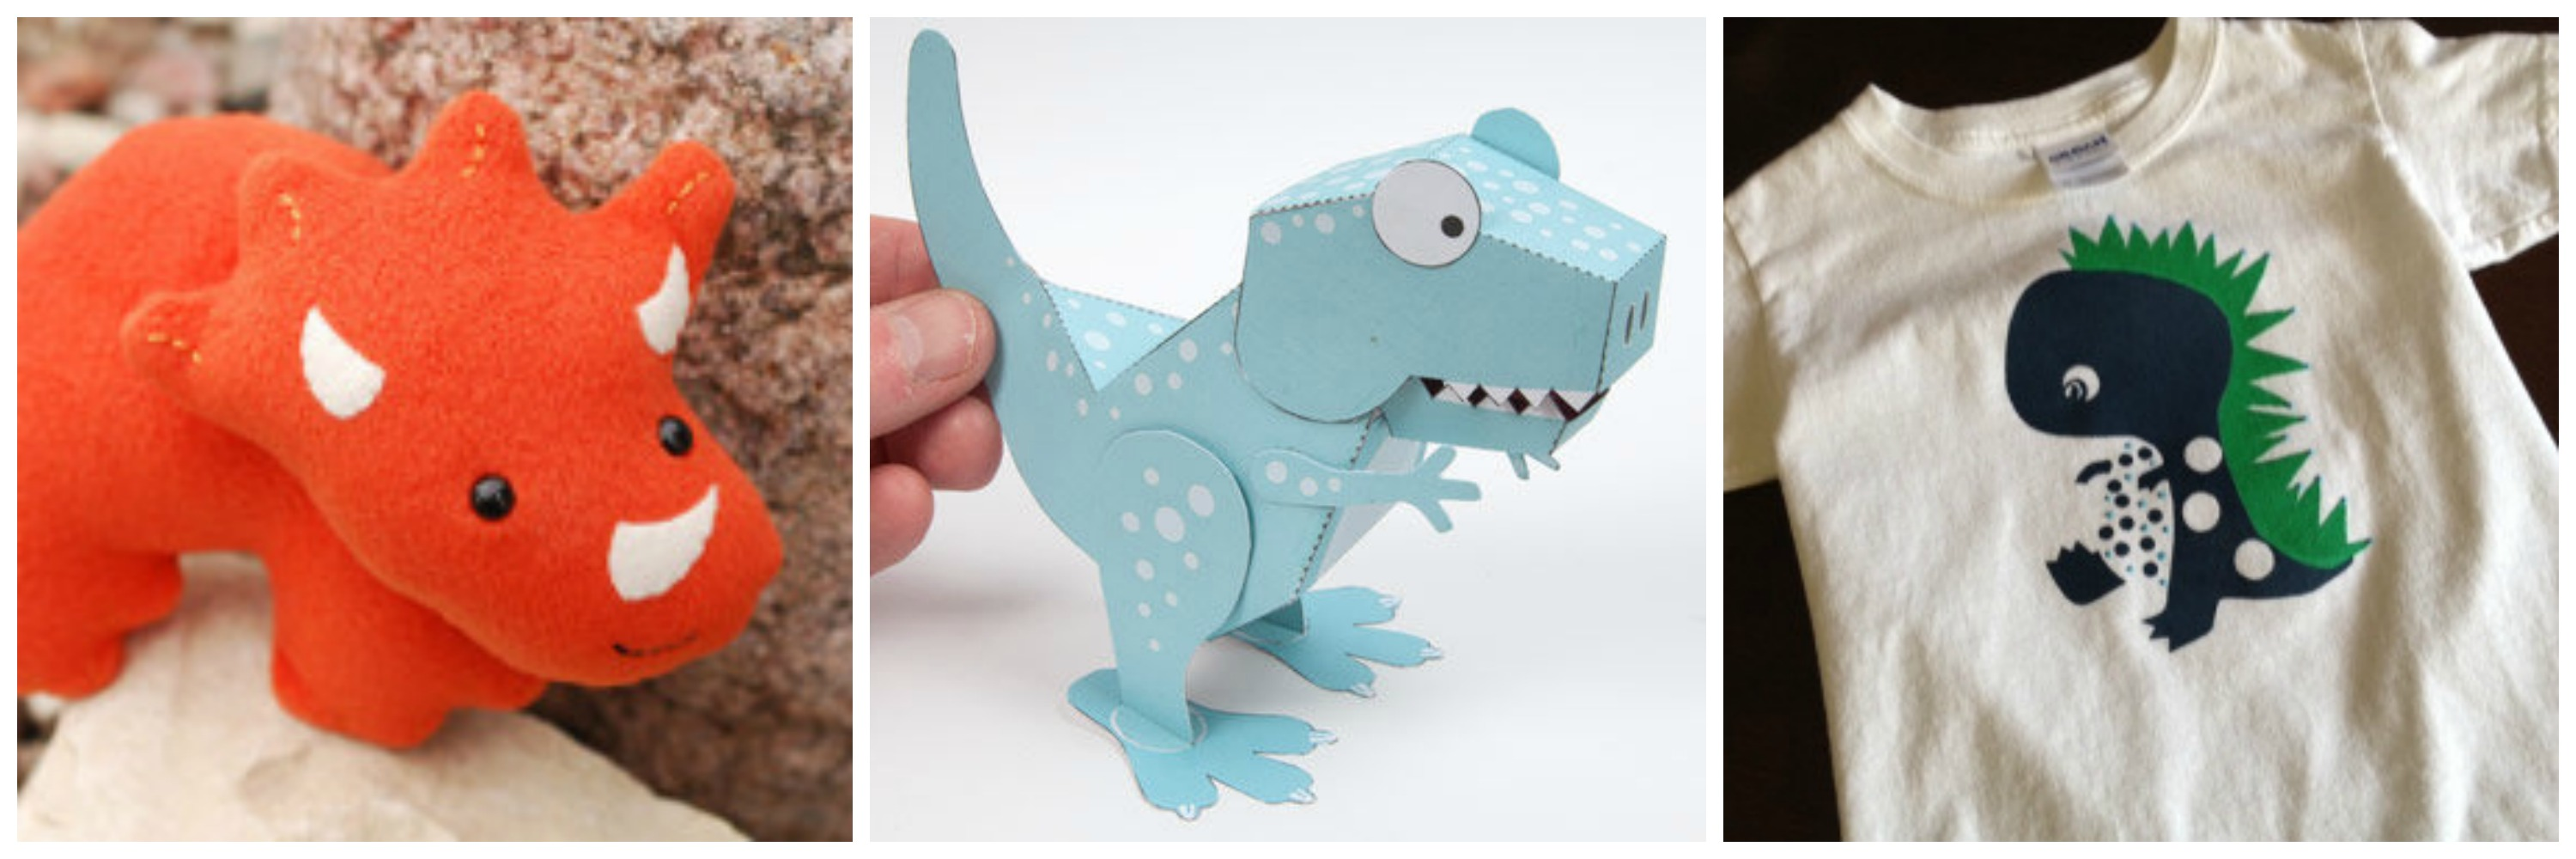 12c68d9f6c60ab Summer Blockbusters  A Jurassic World of Dinosaur Crafts - Craft Paper  Scissors